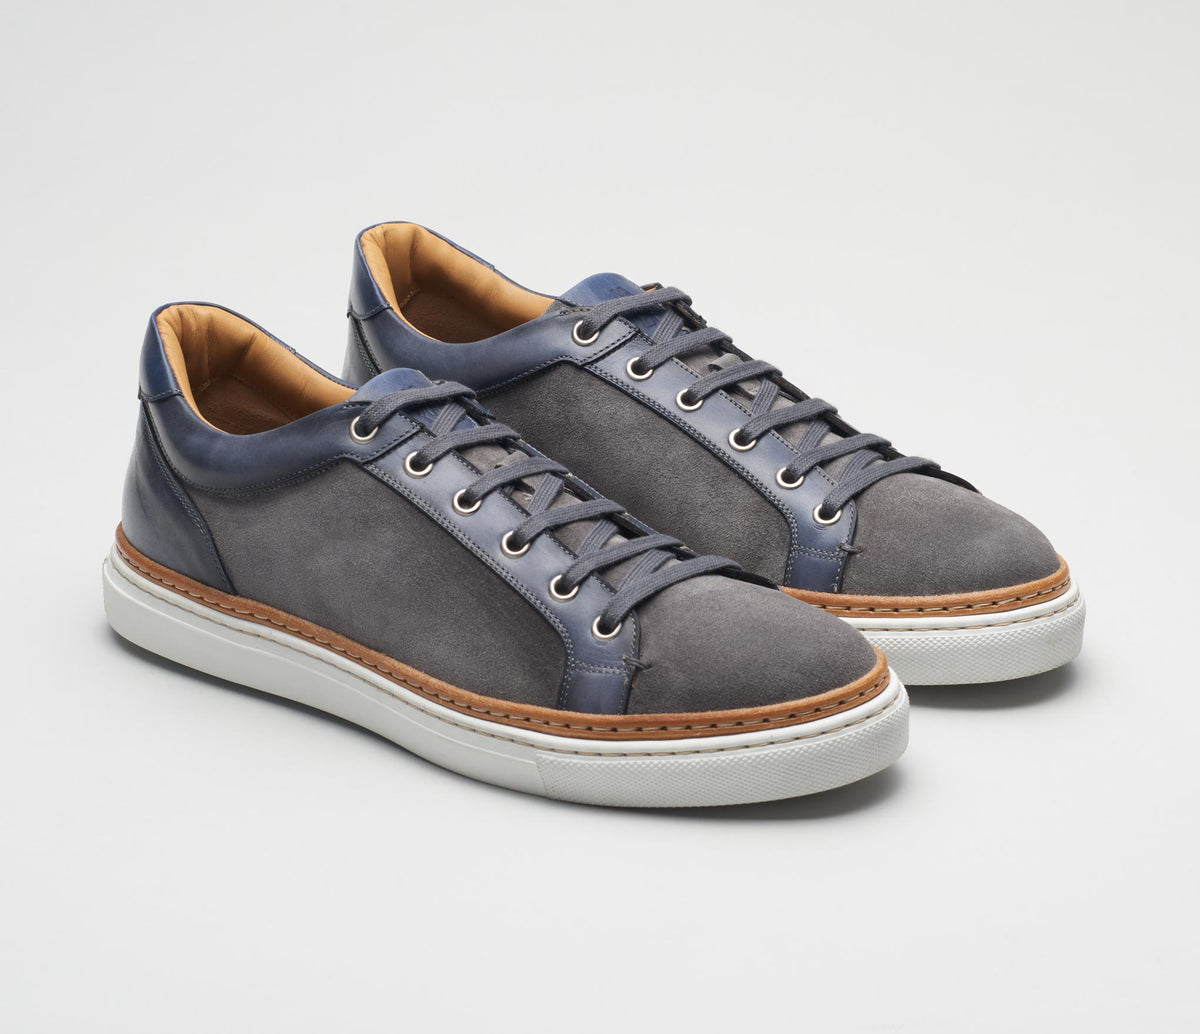 Men's italian shoes, men's sneaker grey